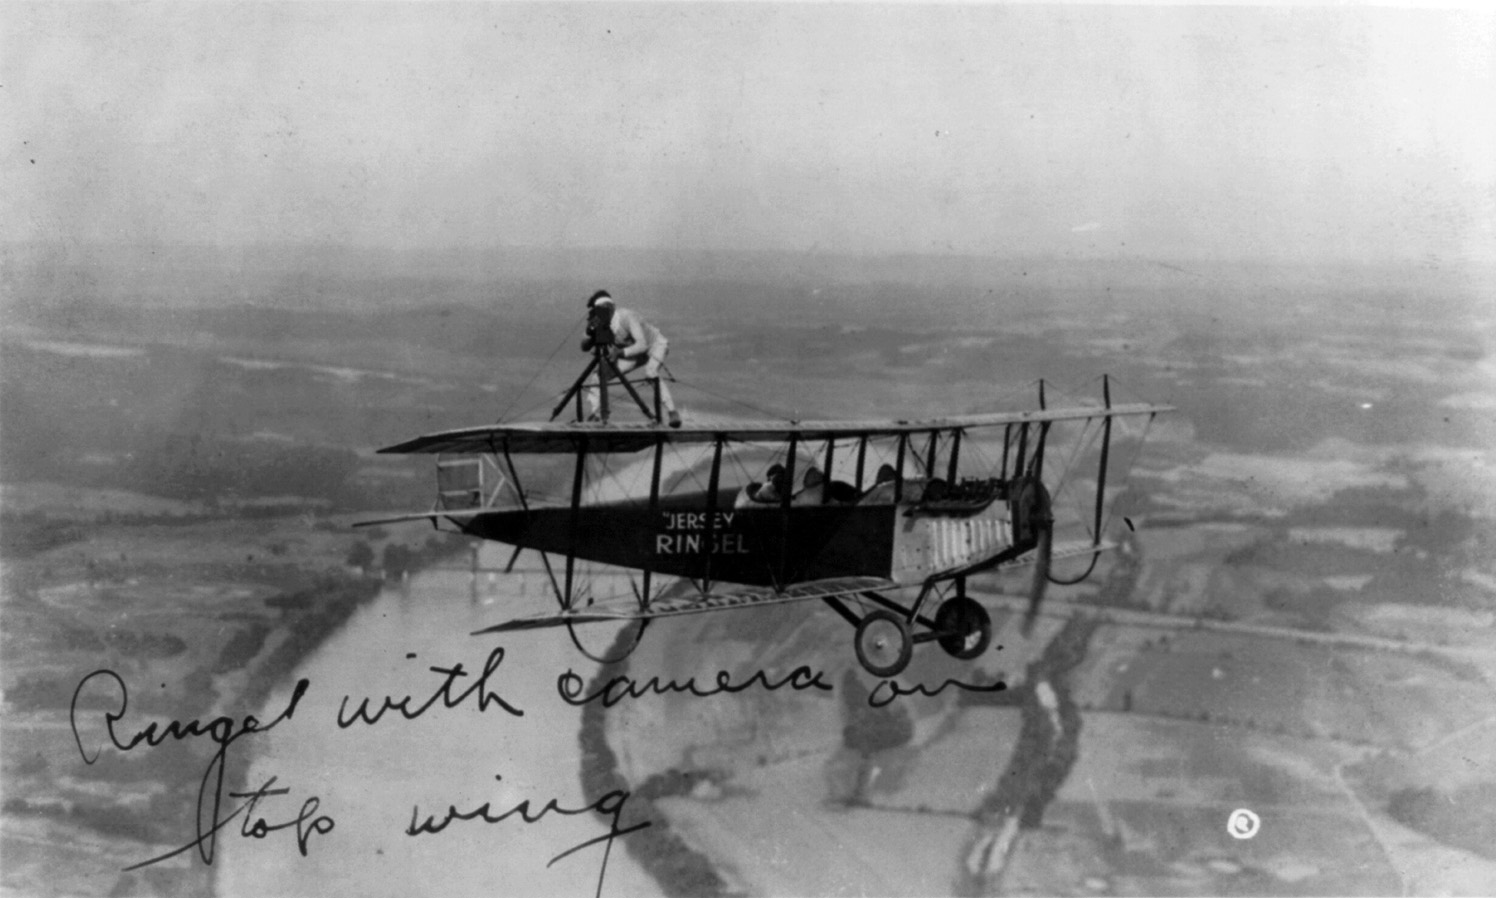 A man standing on top of wing of aeroplane fli...